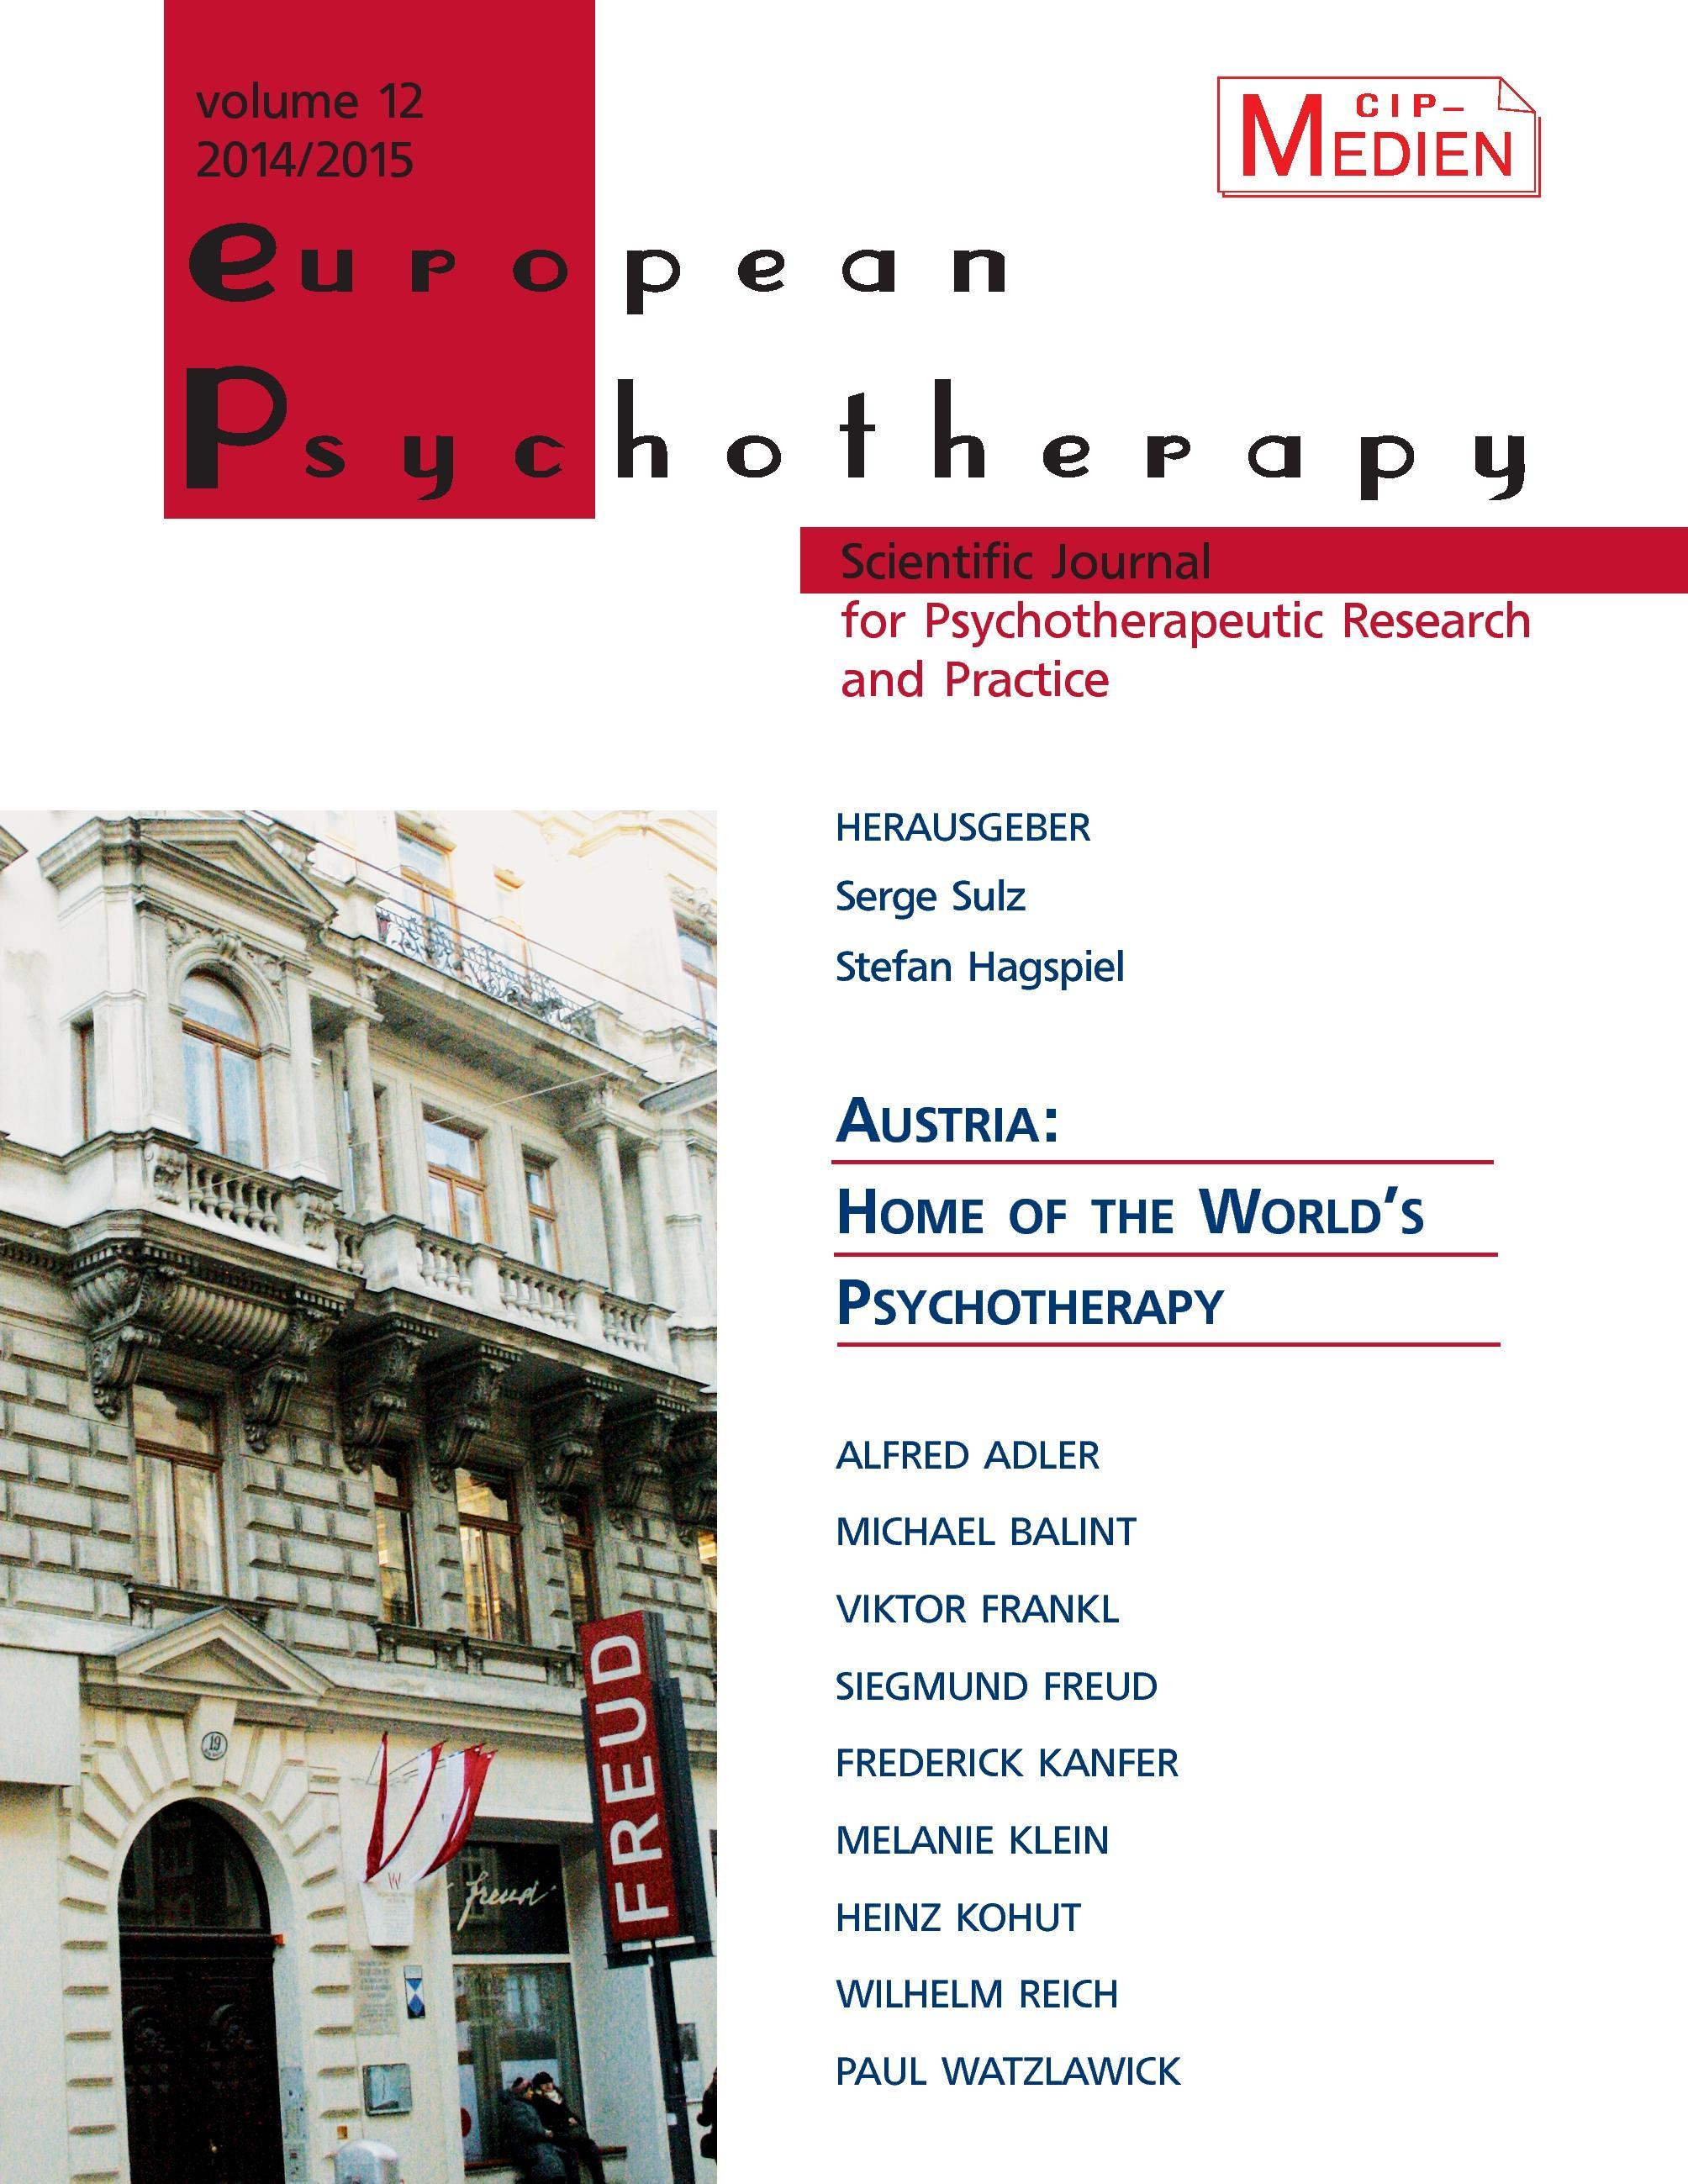 European Psychotherapy 2014/2015